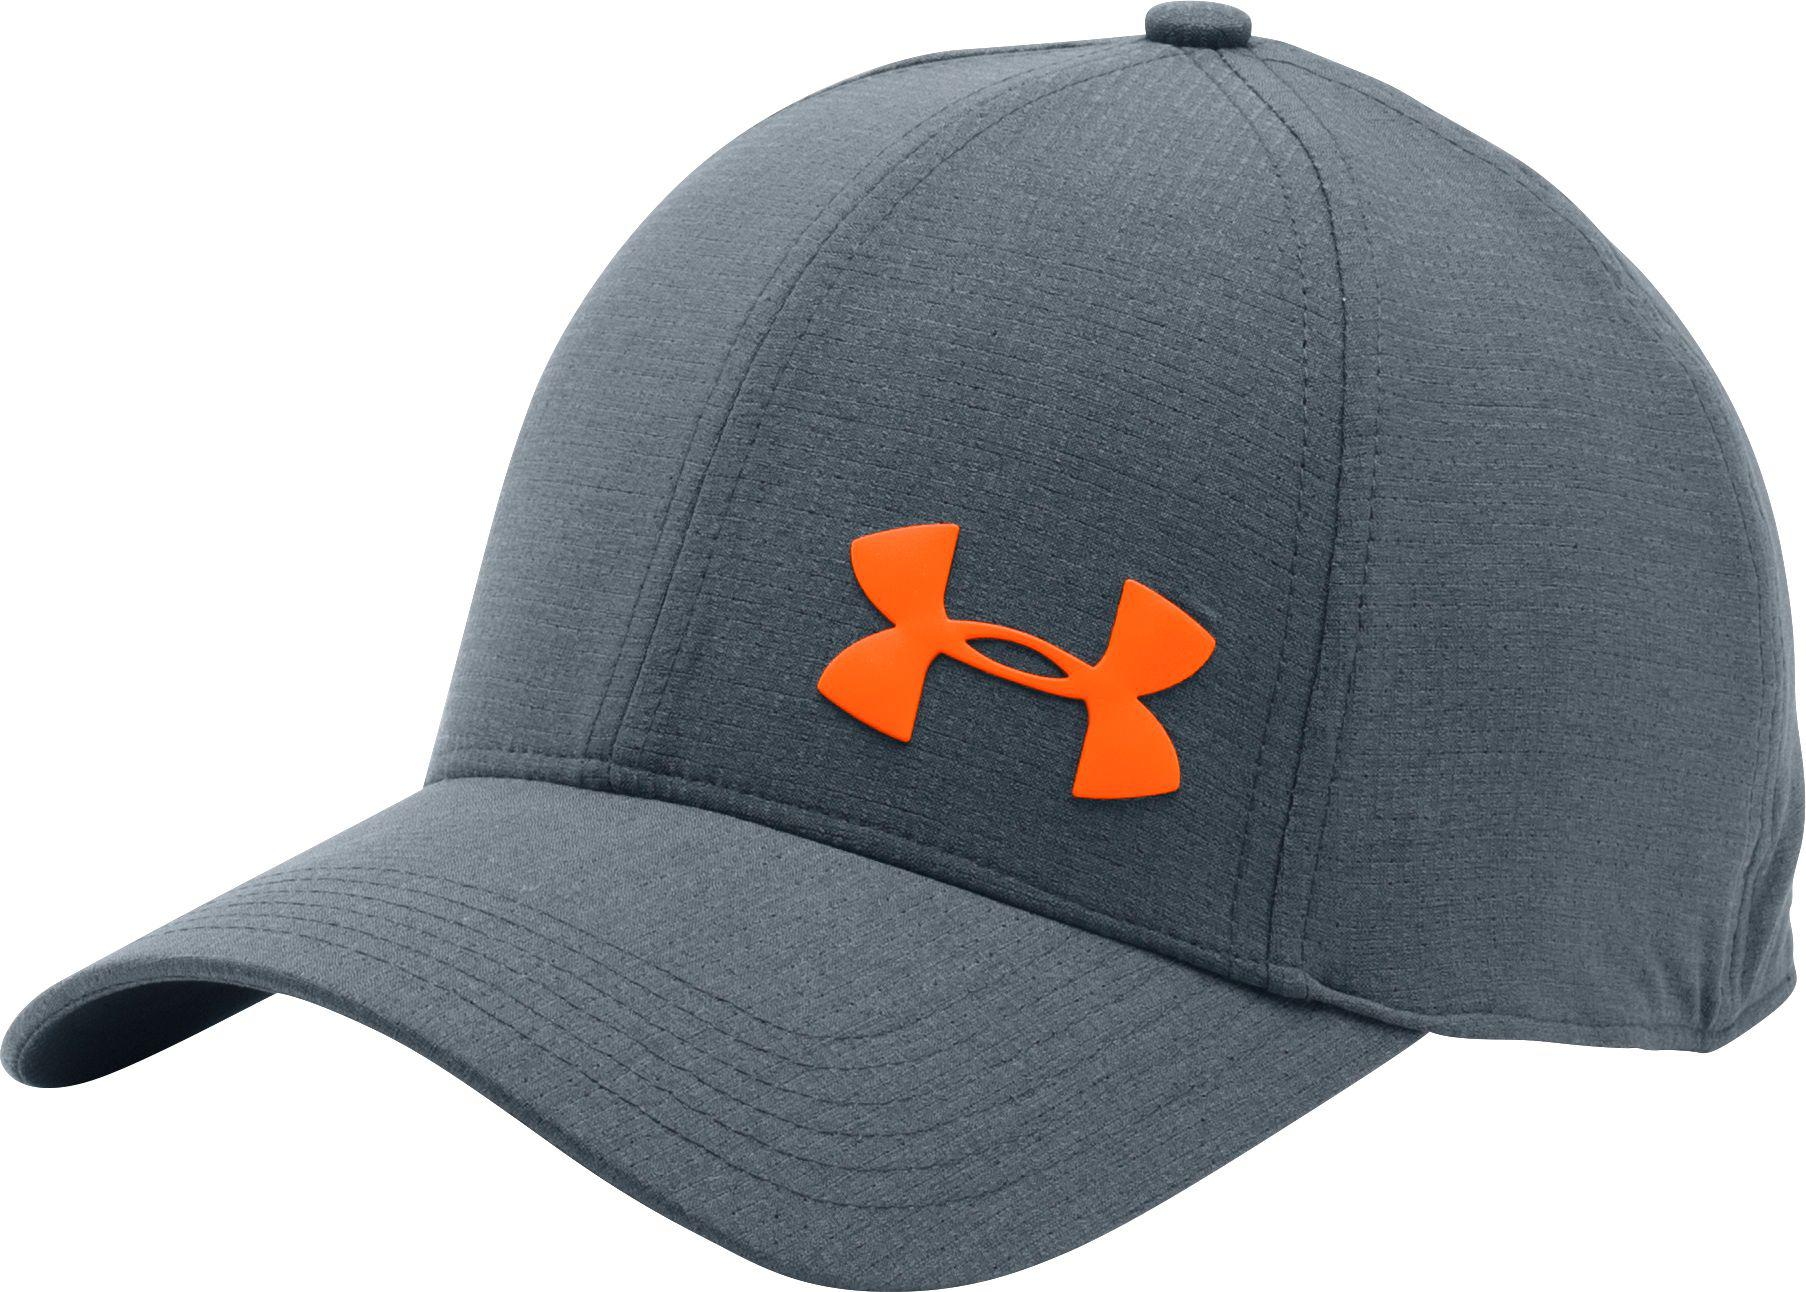 Lyst - Under Armour Airvent Core Hat in Gray for Men f621181f5e5